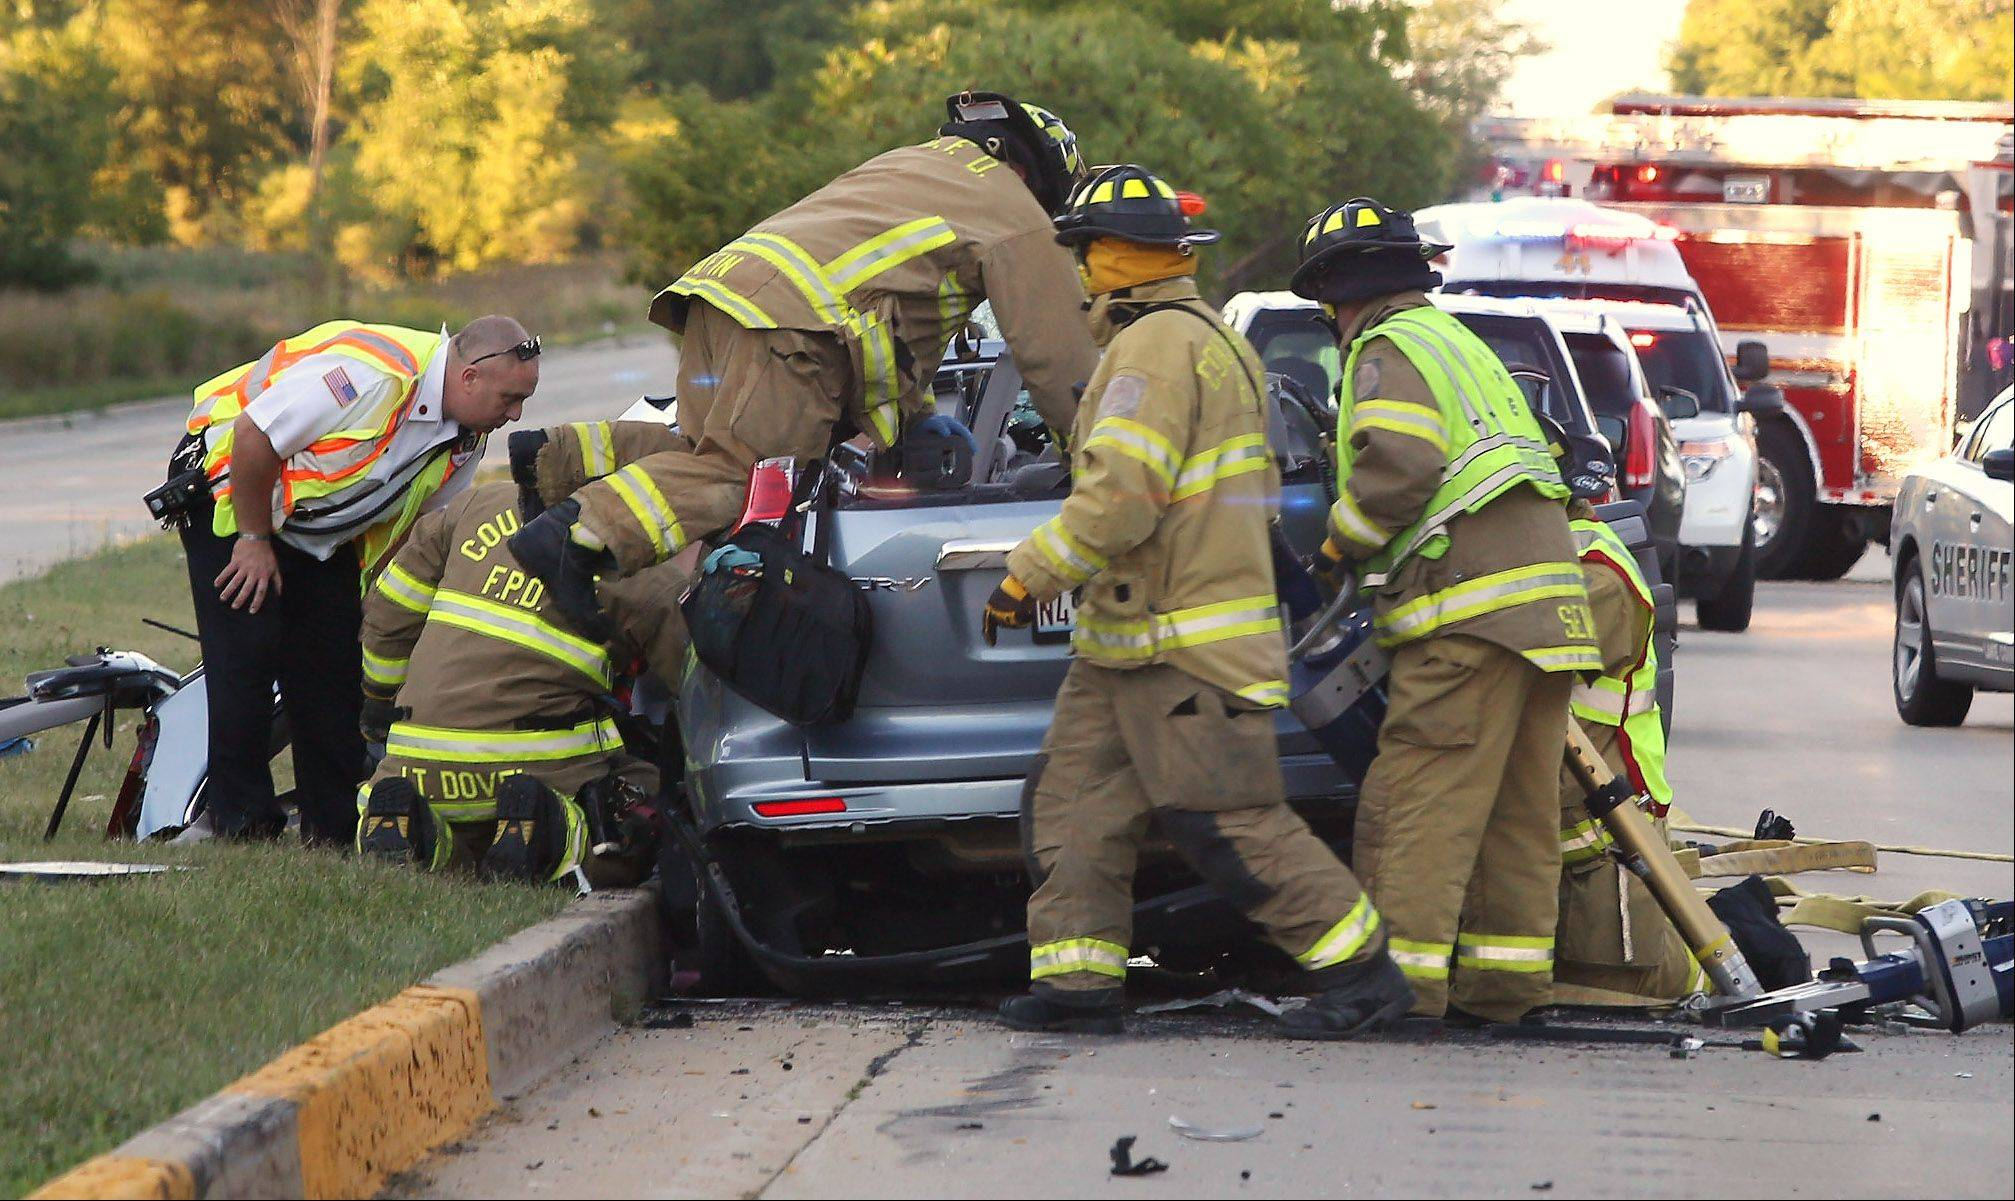 Countryside firefighters work to extricate a person from an SUV after a multiple vehicle accident Sept. 5 on northbound Route 83 at W. Moreland Road in Long Grove.